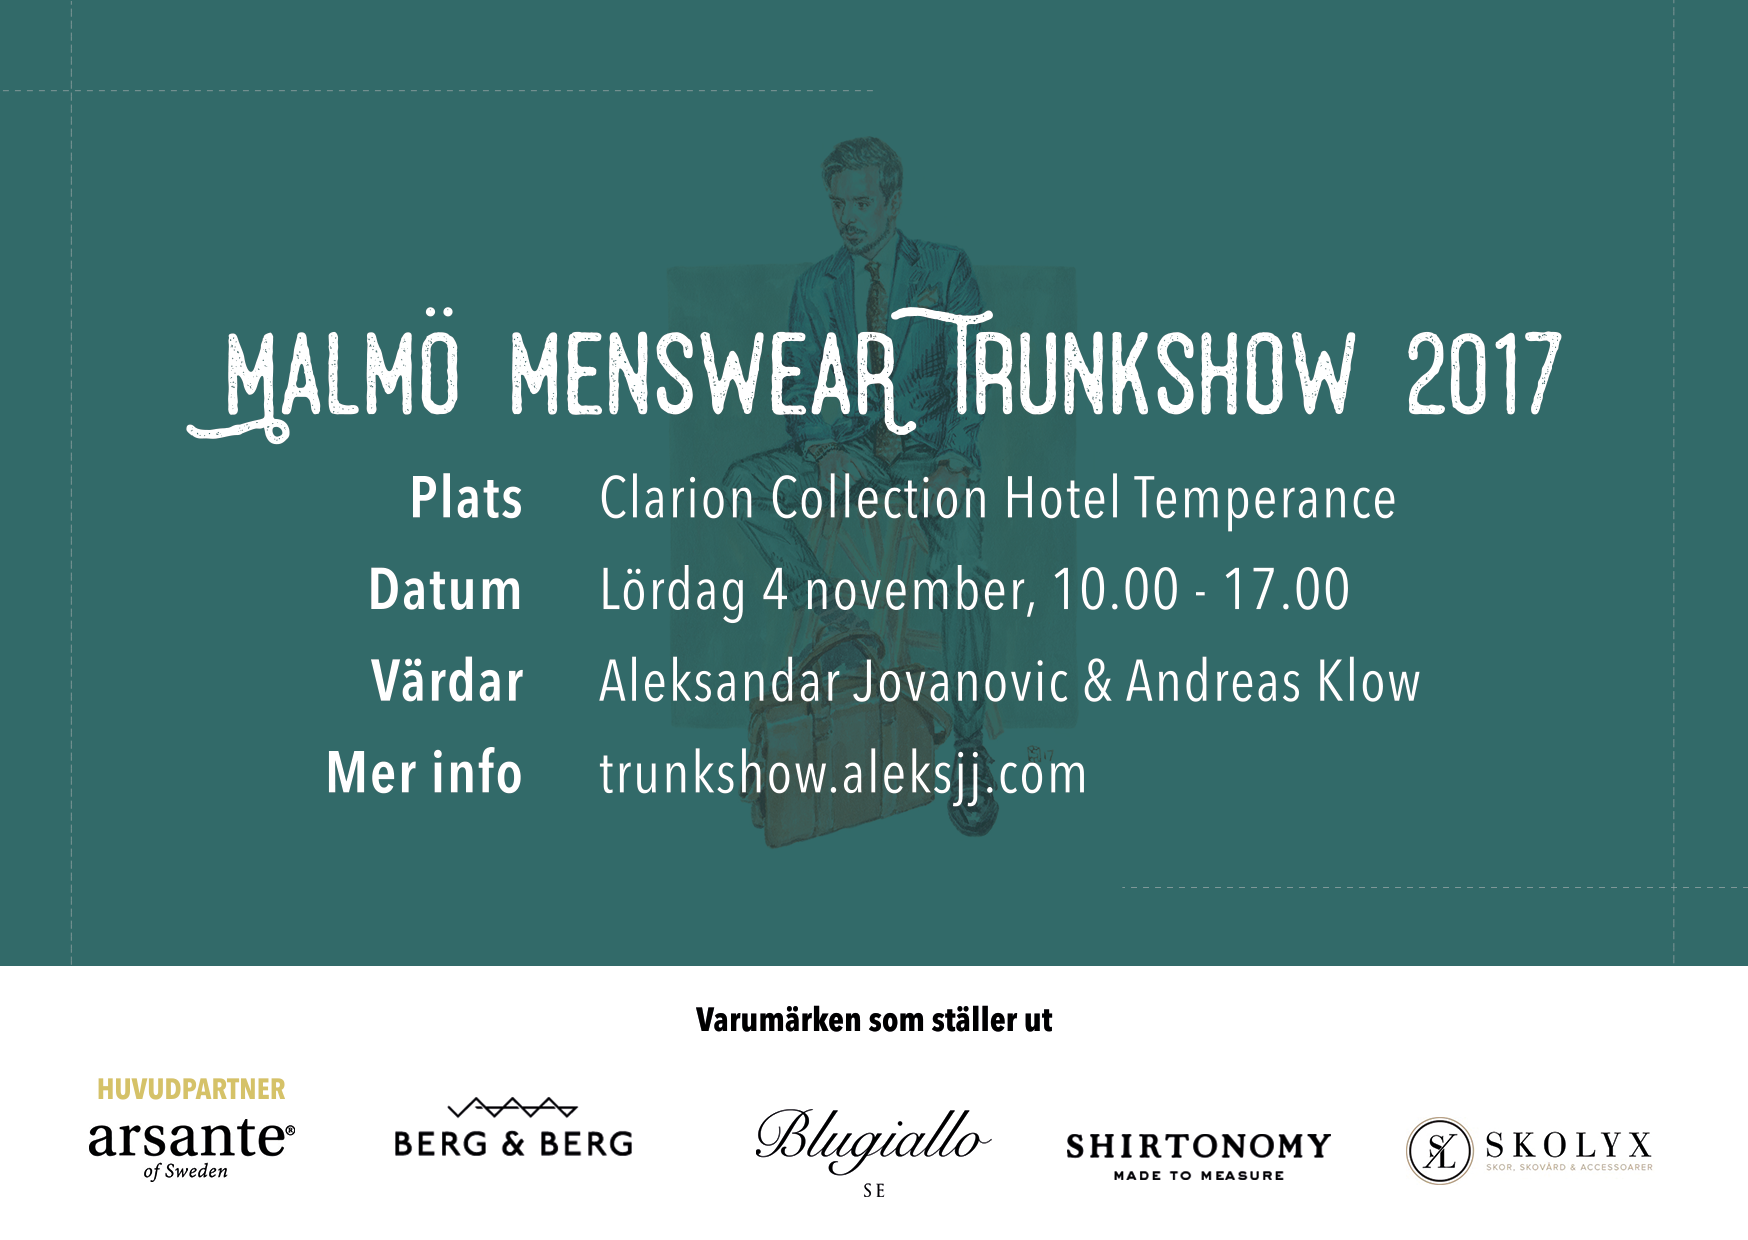 Malmö Menswear Trunkshow 2017 – 4 november @Clarion Collection Temperance